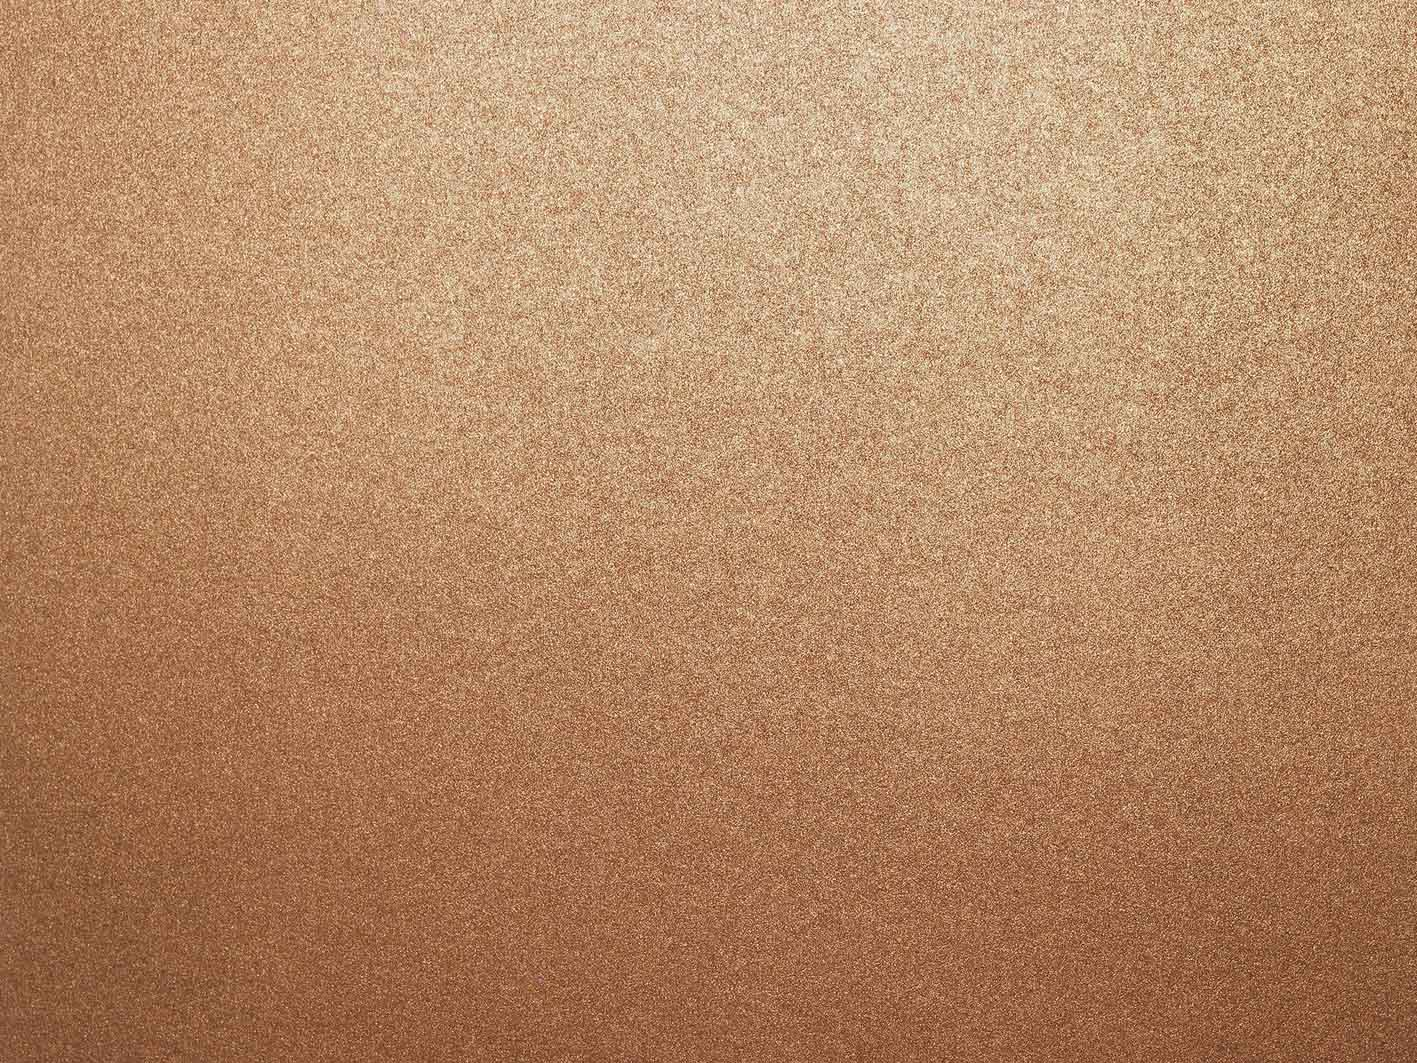 Pearlescent - Copper 120gsm